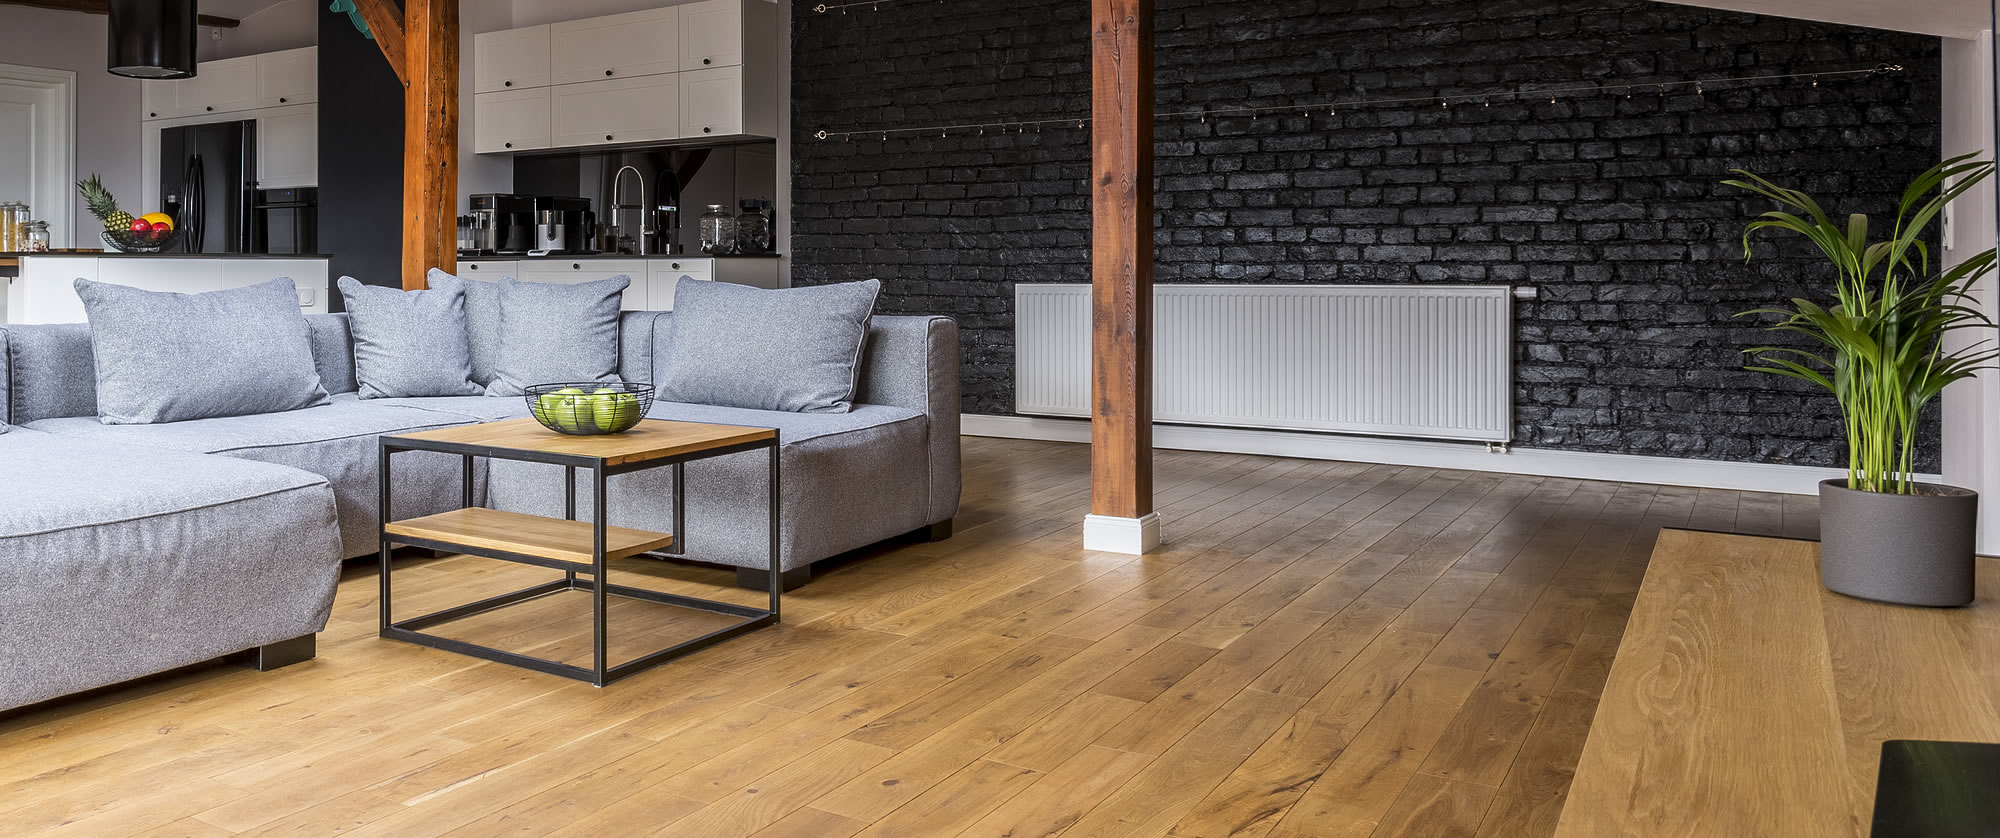 The Leading 6 Points Allowing Savage Homeowners Appreciate About Epoxy Floors